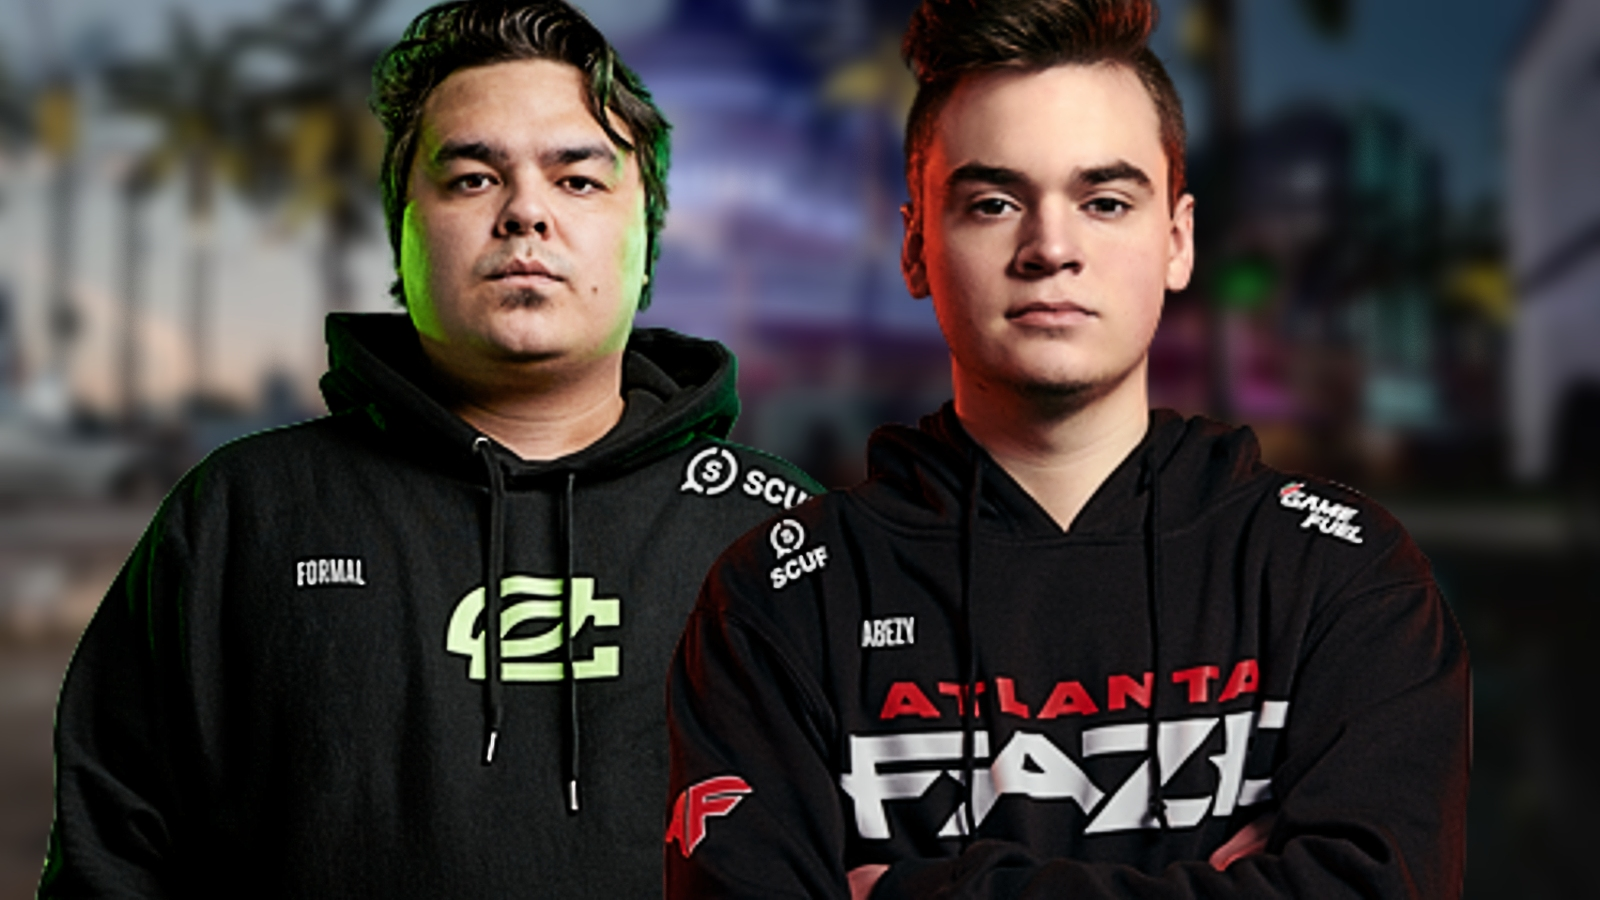 OpTic Chicago's Formal and Atlanta FaZe's Abezy after CDL Opening Weekend